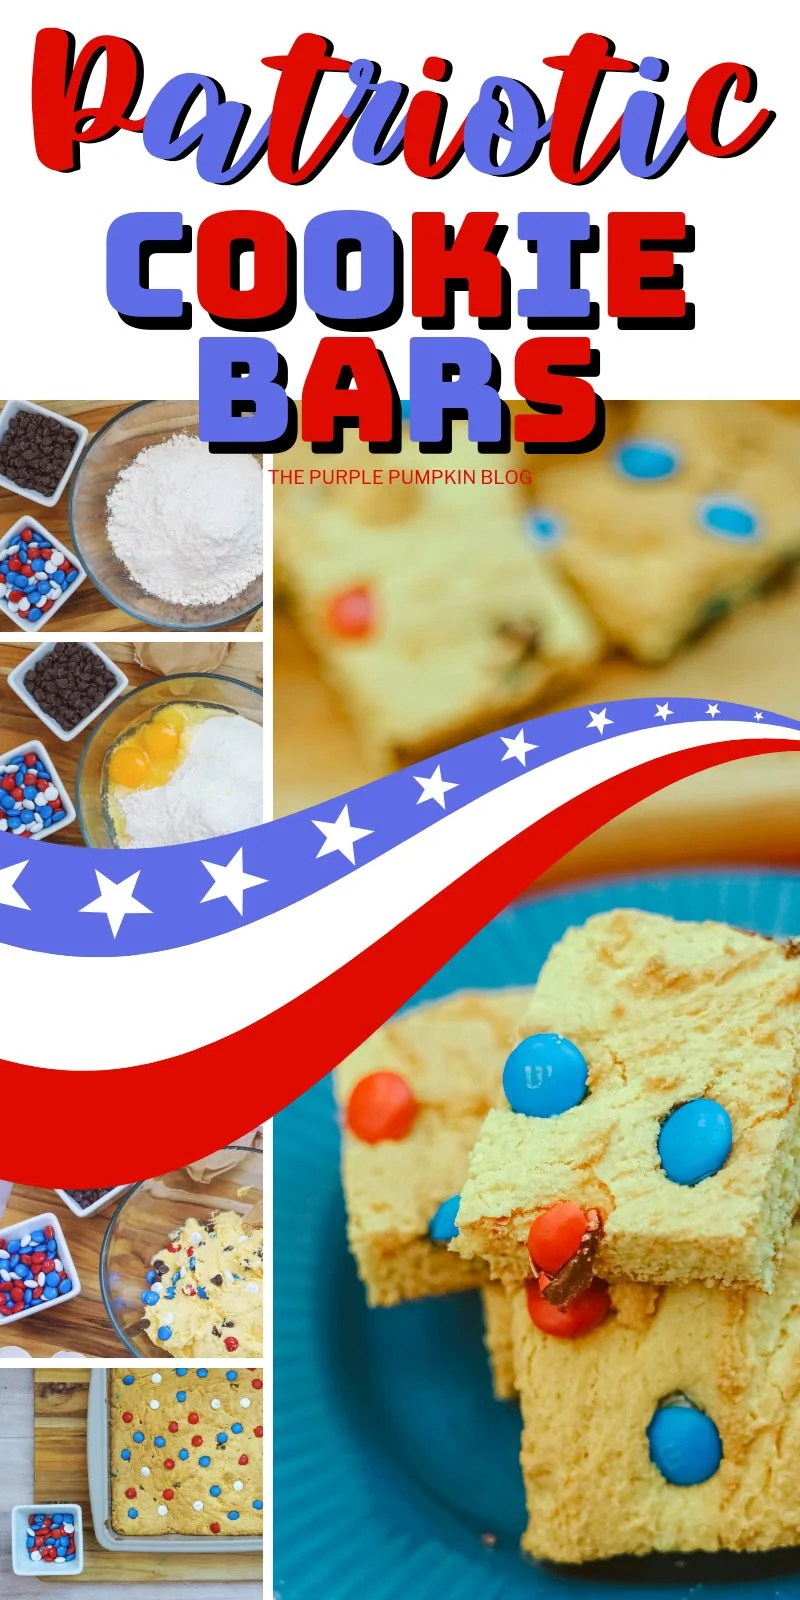 Cookie bars with red, white and blue candy